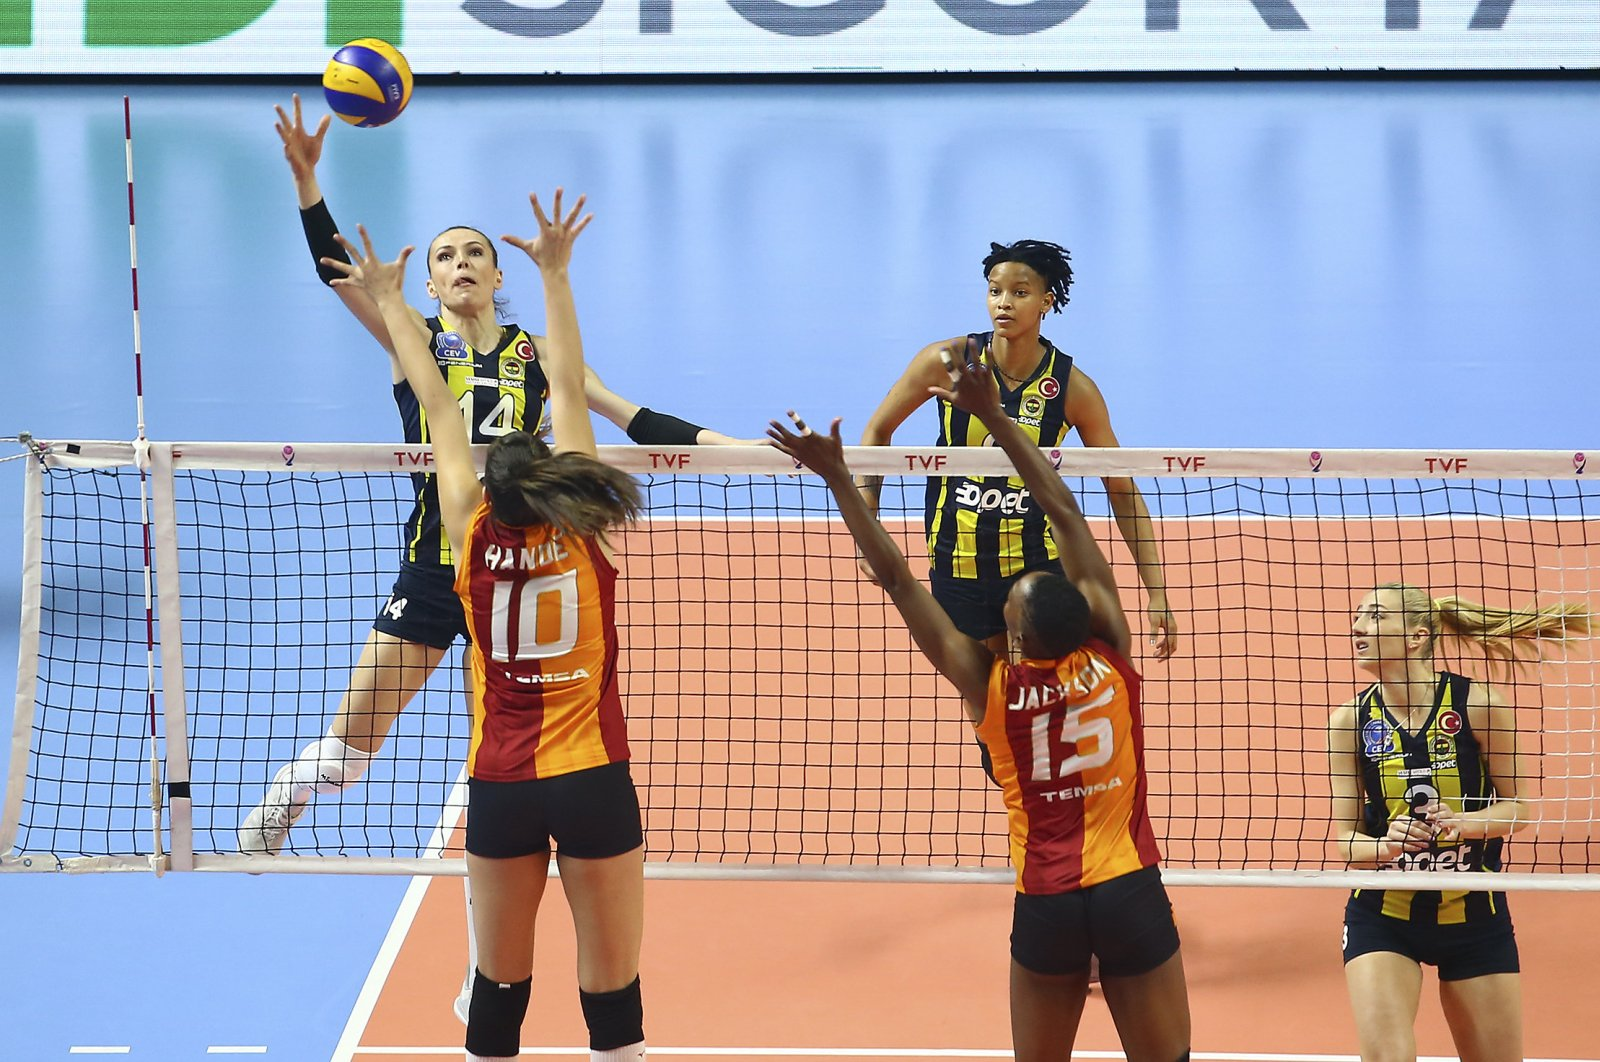 A player from Fenerbahçe Opet jumps to hit the ball in a game against Galatasaray HDI Sigorta, Jan. 31, 2019. (AA Photo)